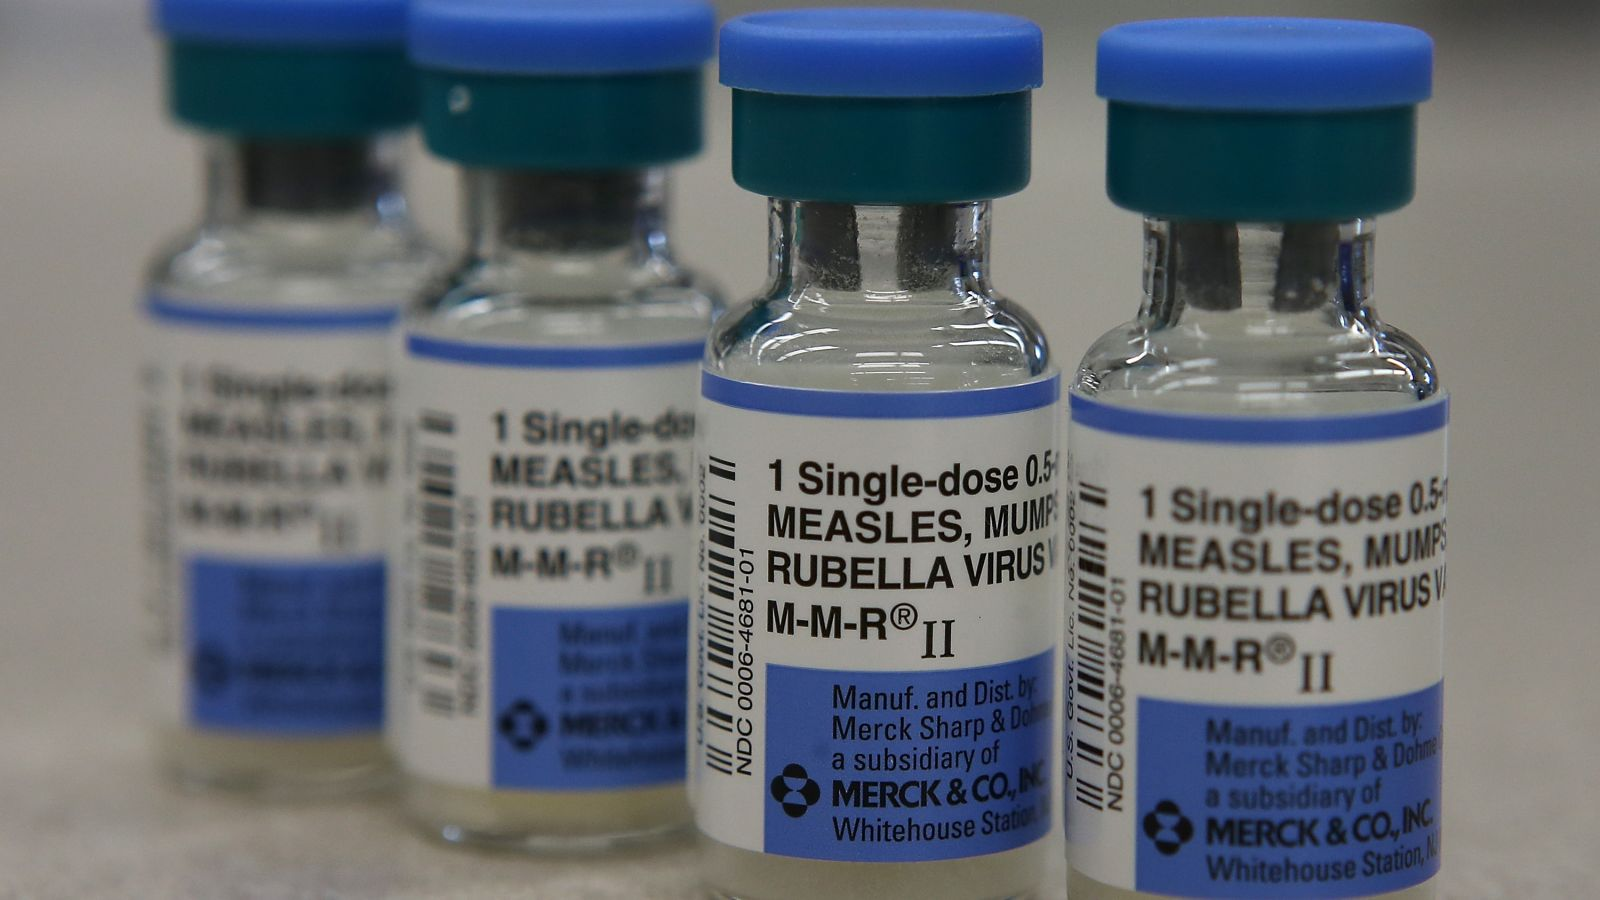 Even A Tiny Dip In Measles Vaccinations Could Have Disastrous Consequences